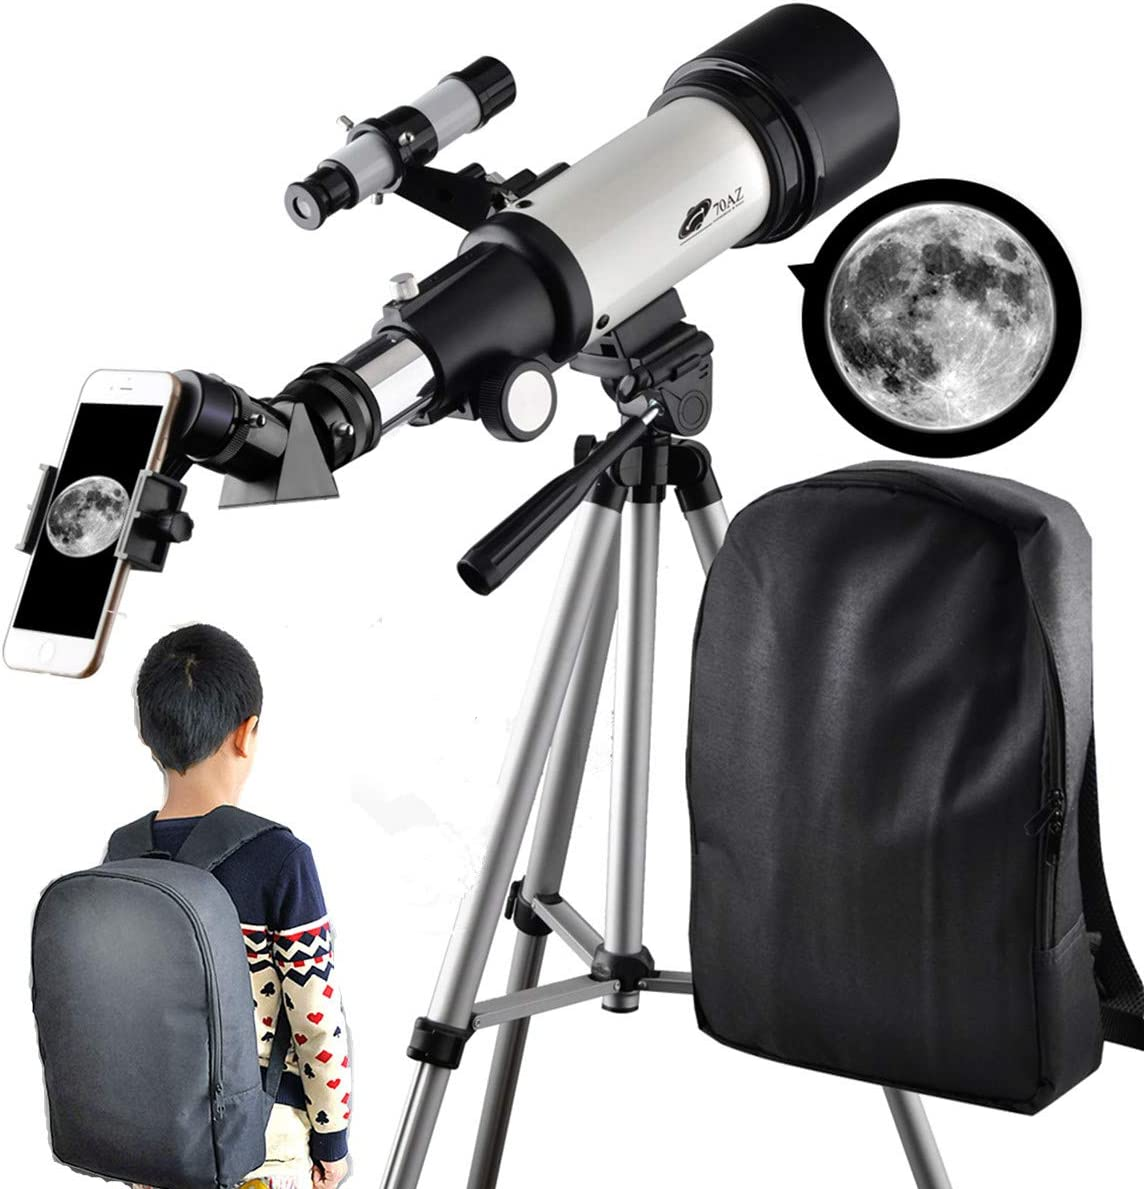 Top 17 Best Telescope For Kids (2020 Reviews & Buying Guide) 1